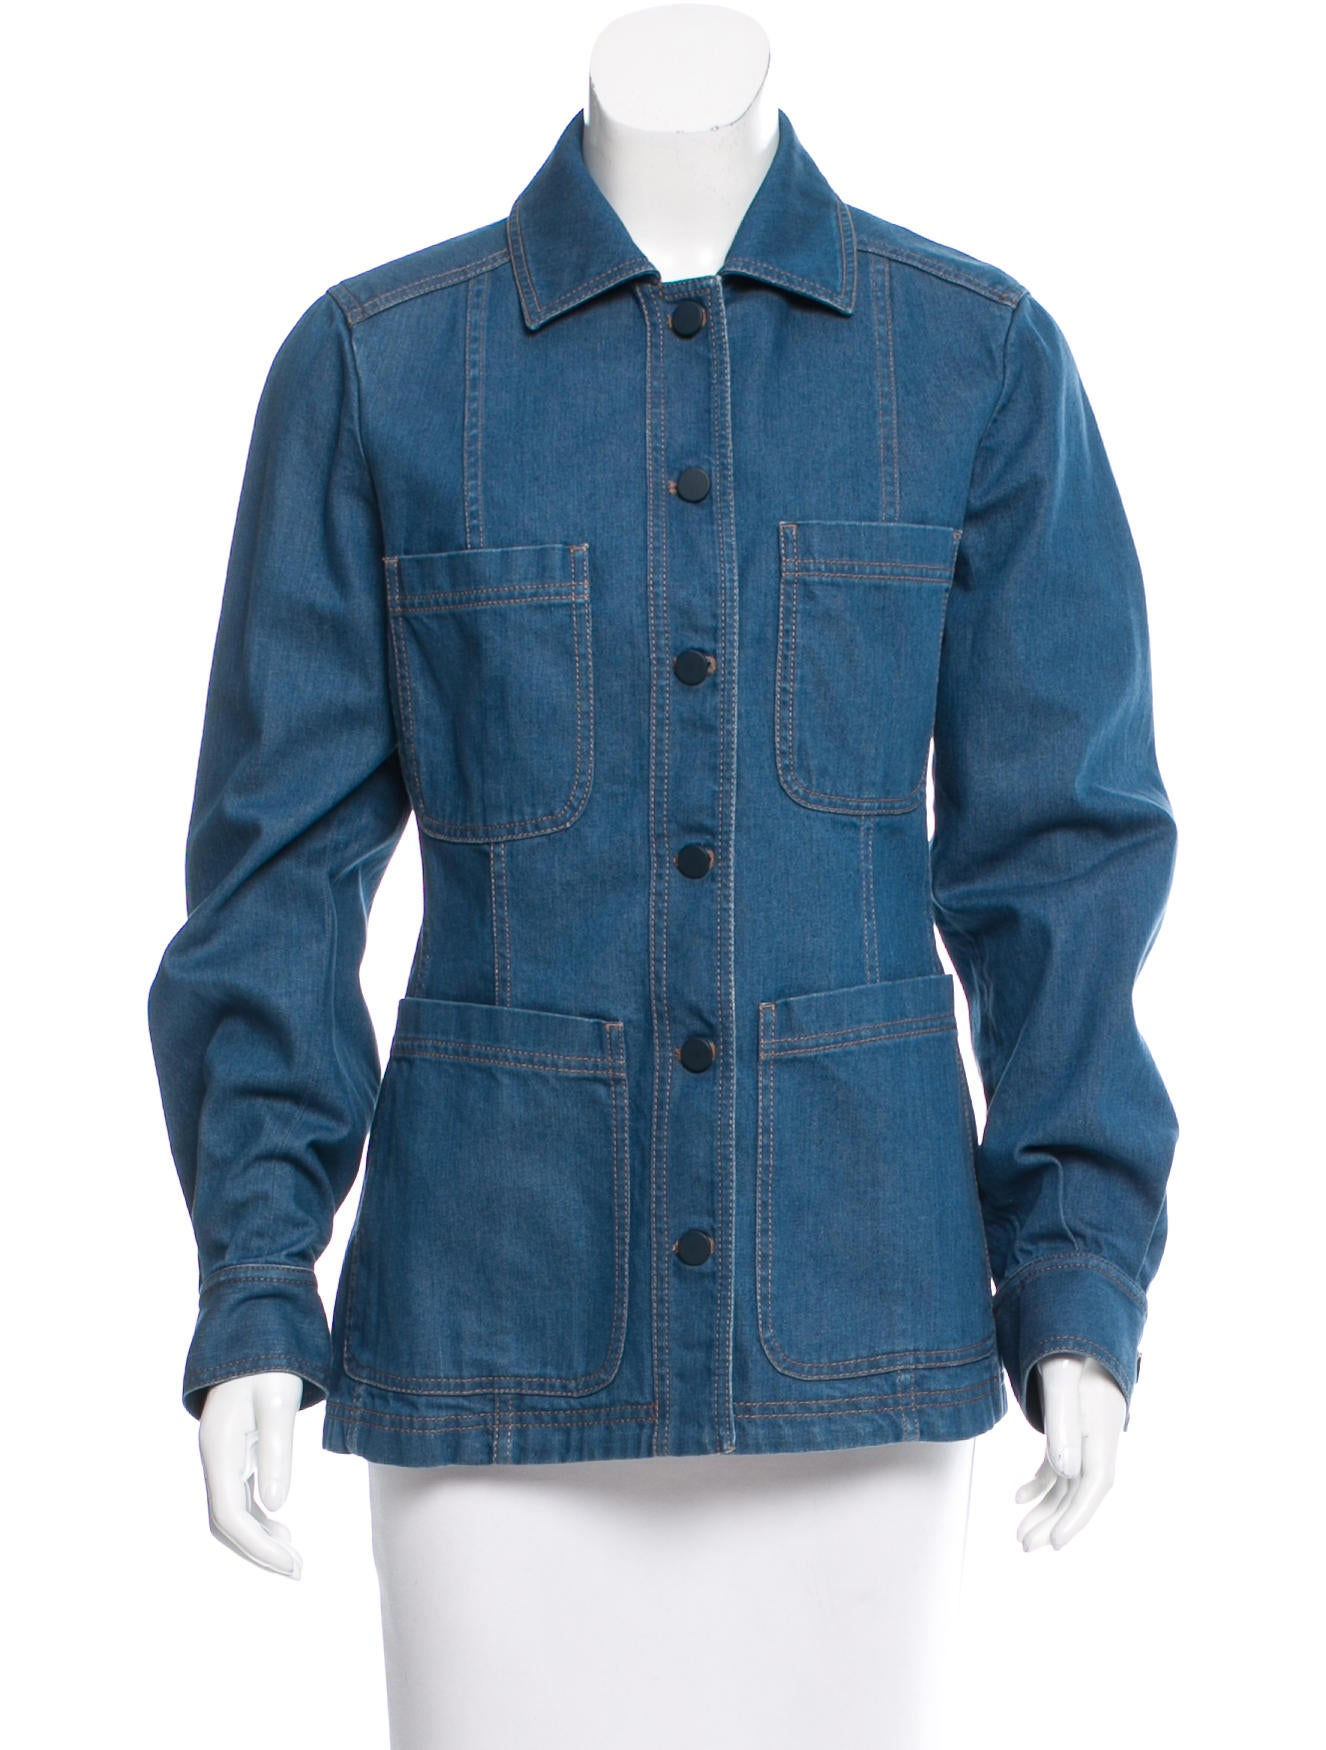 Find great deals on eBay for womens fitted denim jacket. Shop with confidence.